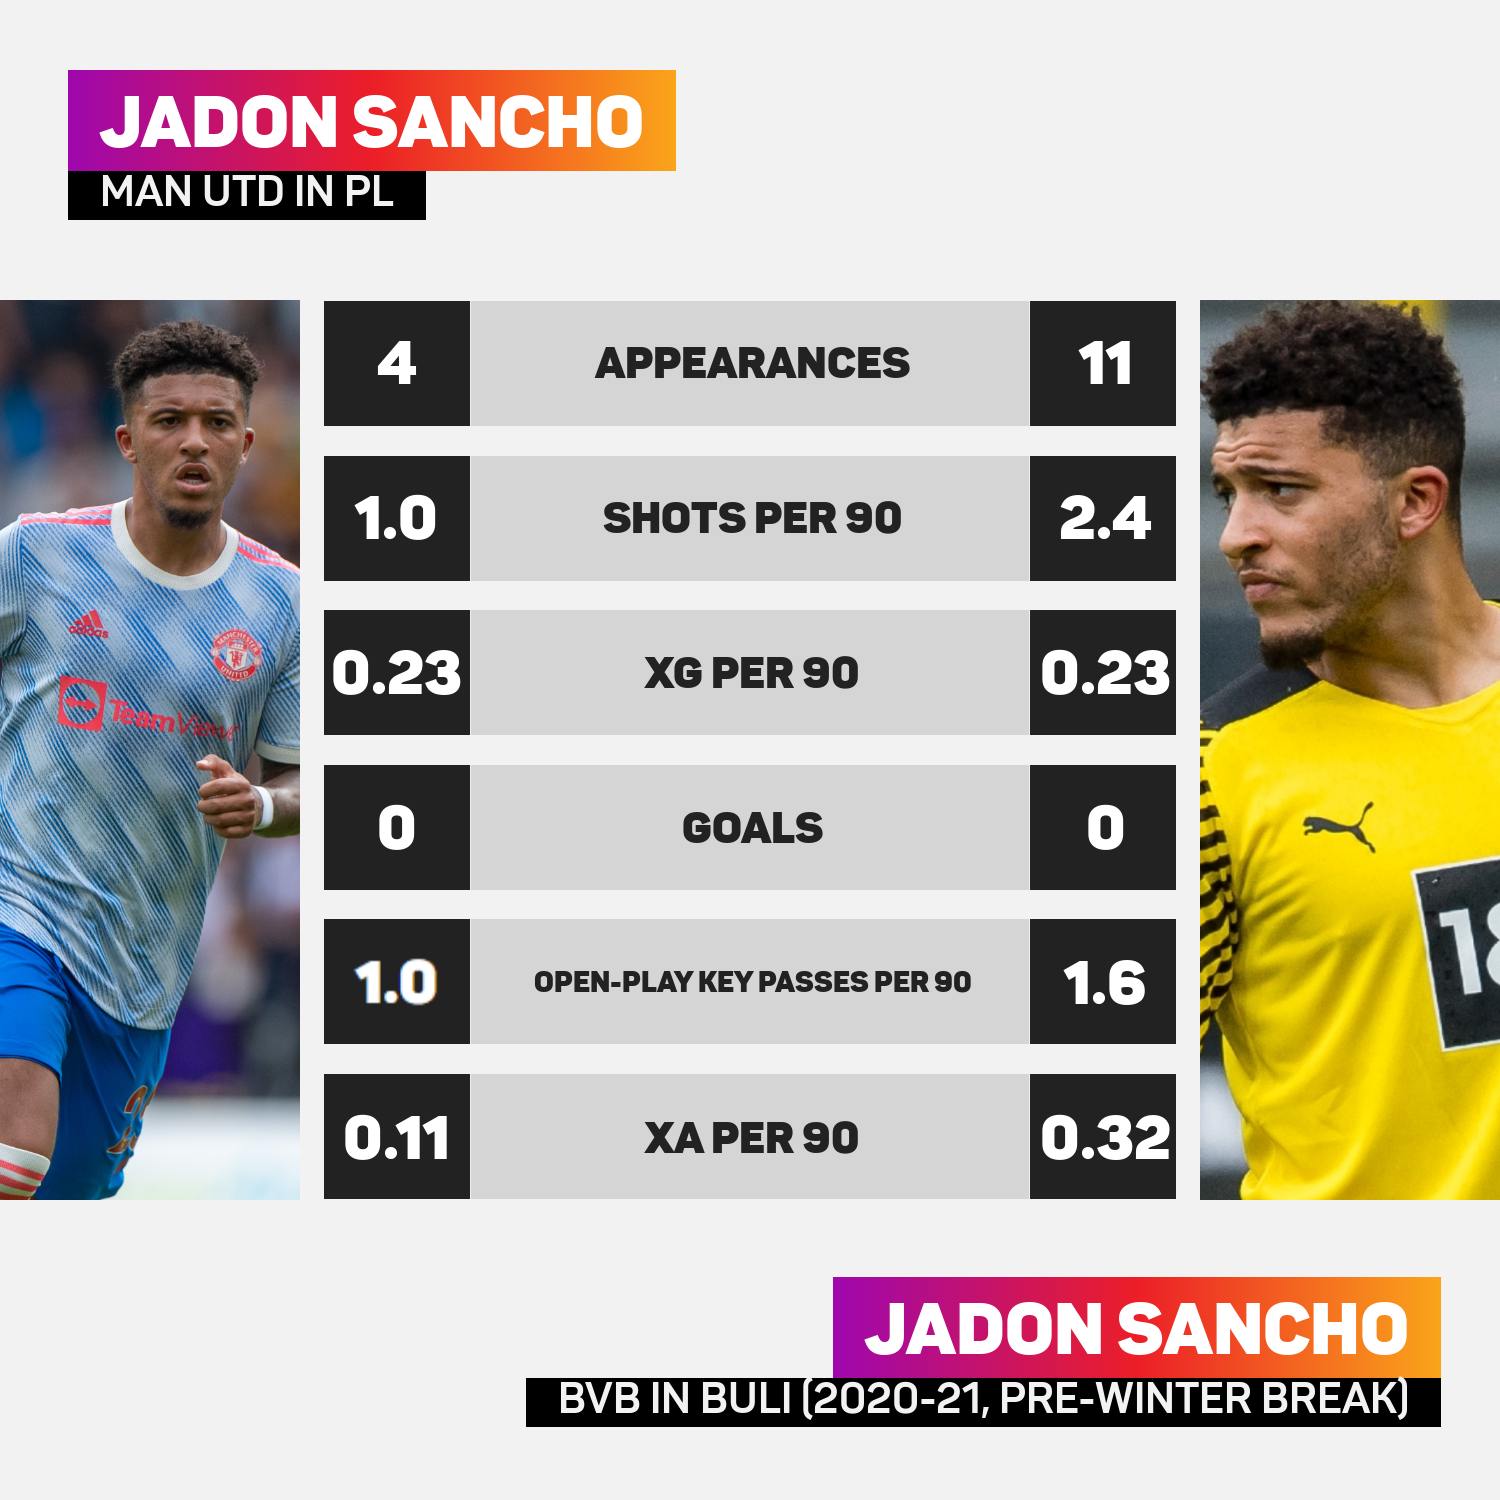 Jadon Sancho's yet to explode at Manchester United